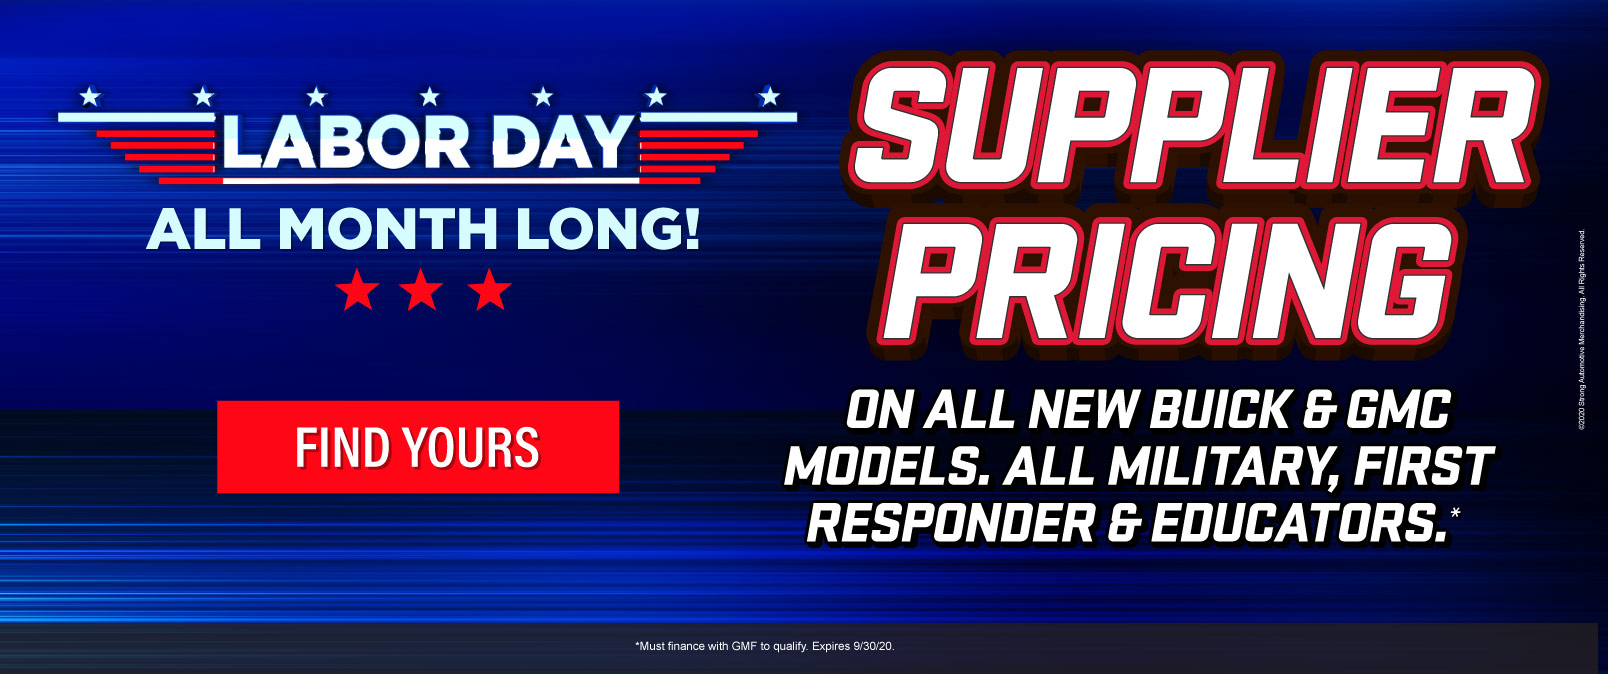 Supplier Pricing on all new Buick/GMC Models